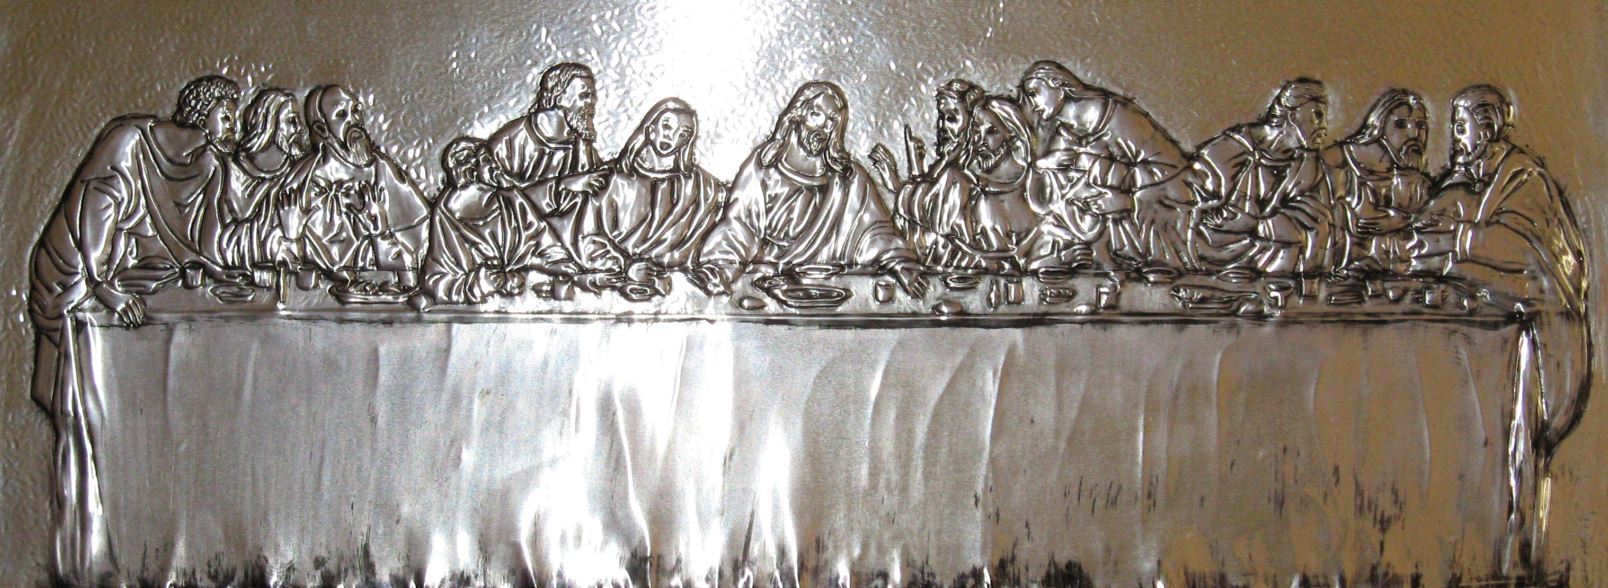 last-supper-2